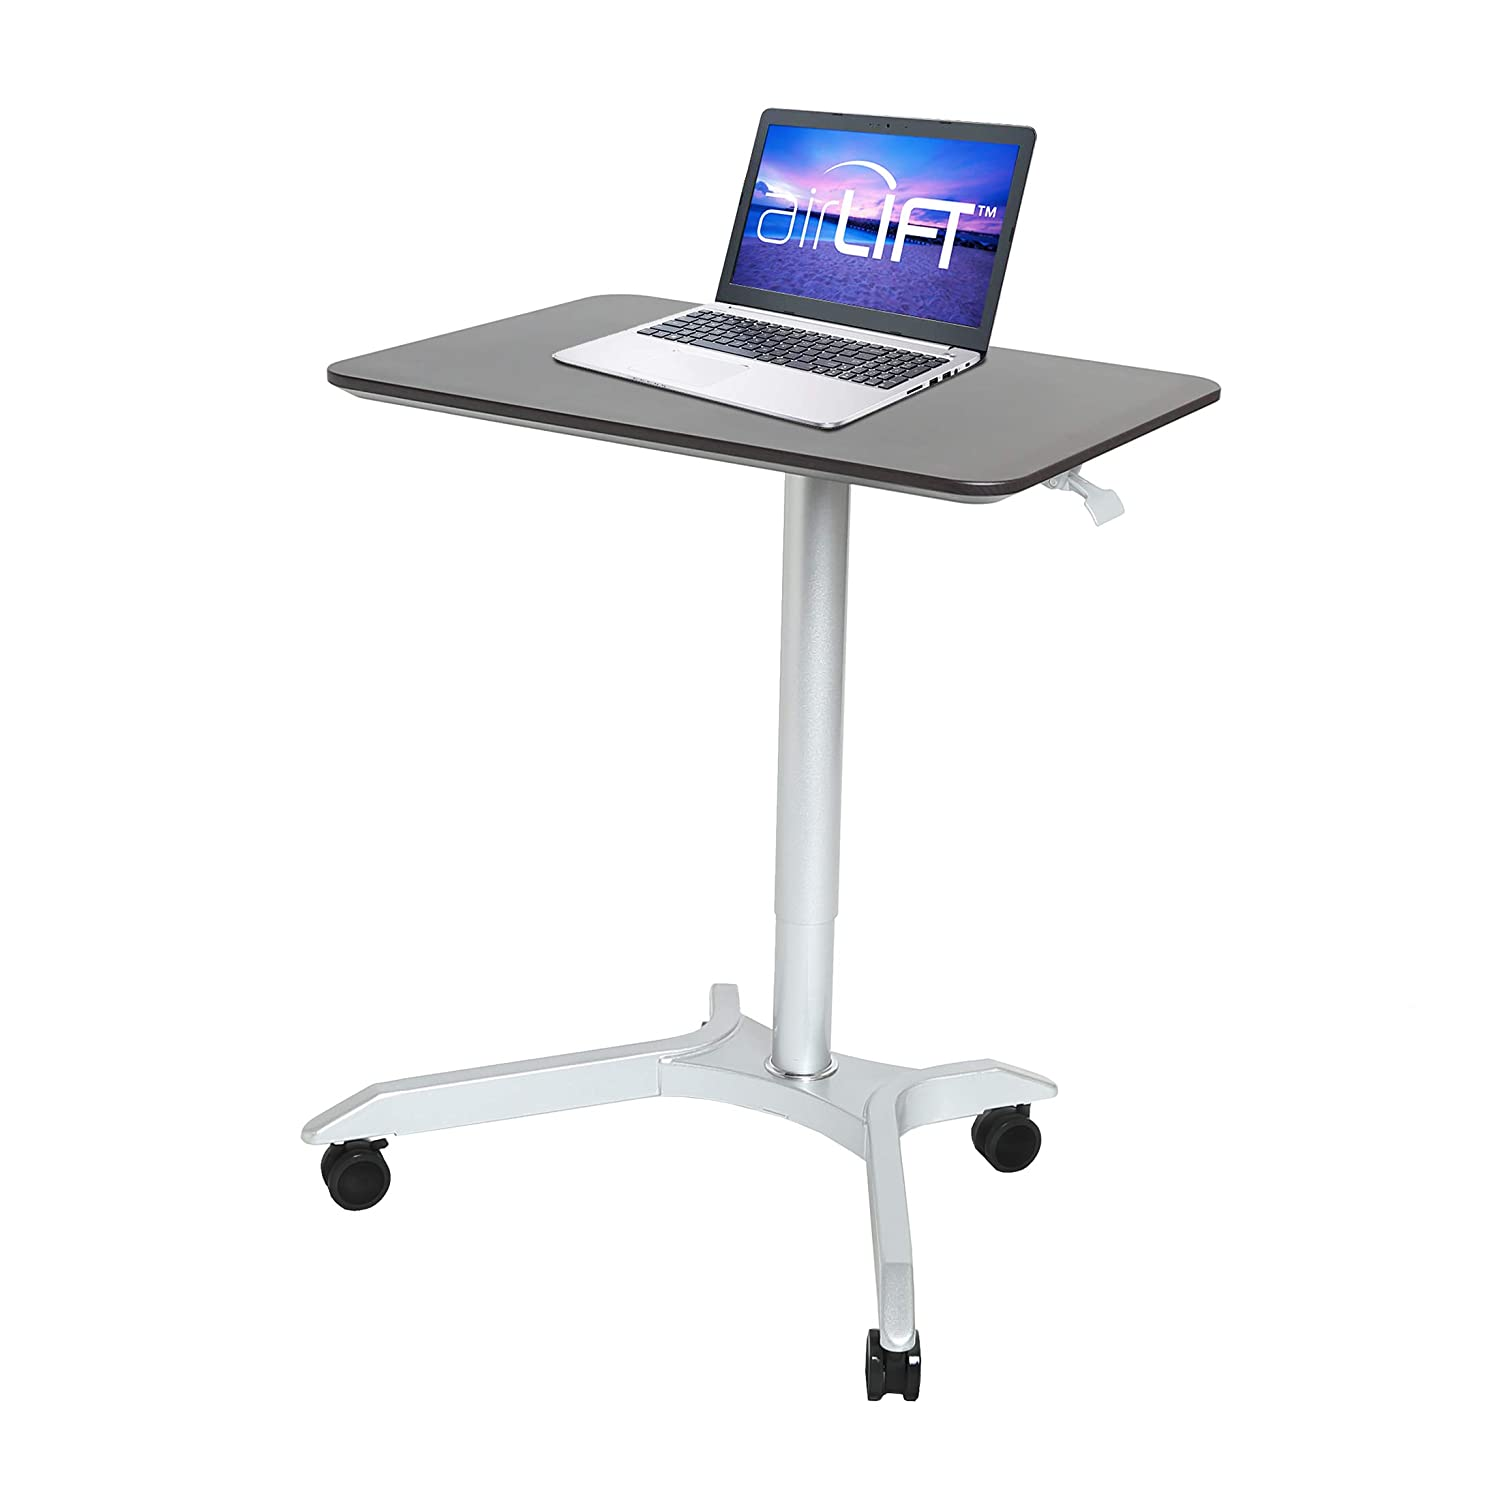 Seville Classics AIRLIFT XL Pneumatic Sit-Stand Mobile Desk Cart, Height-Adjustable from 27.1 to 41.9, Espresso